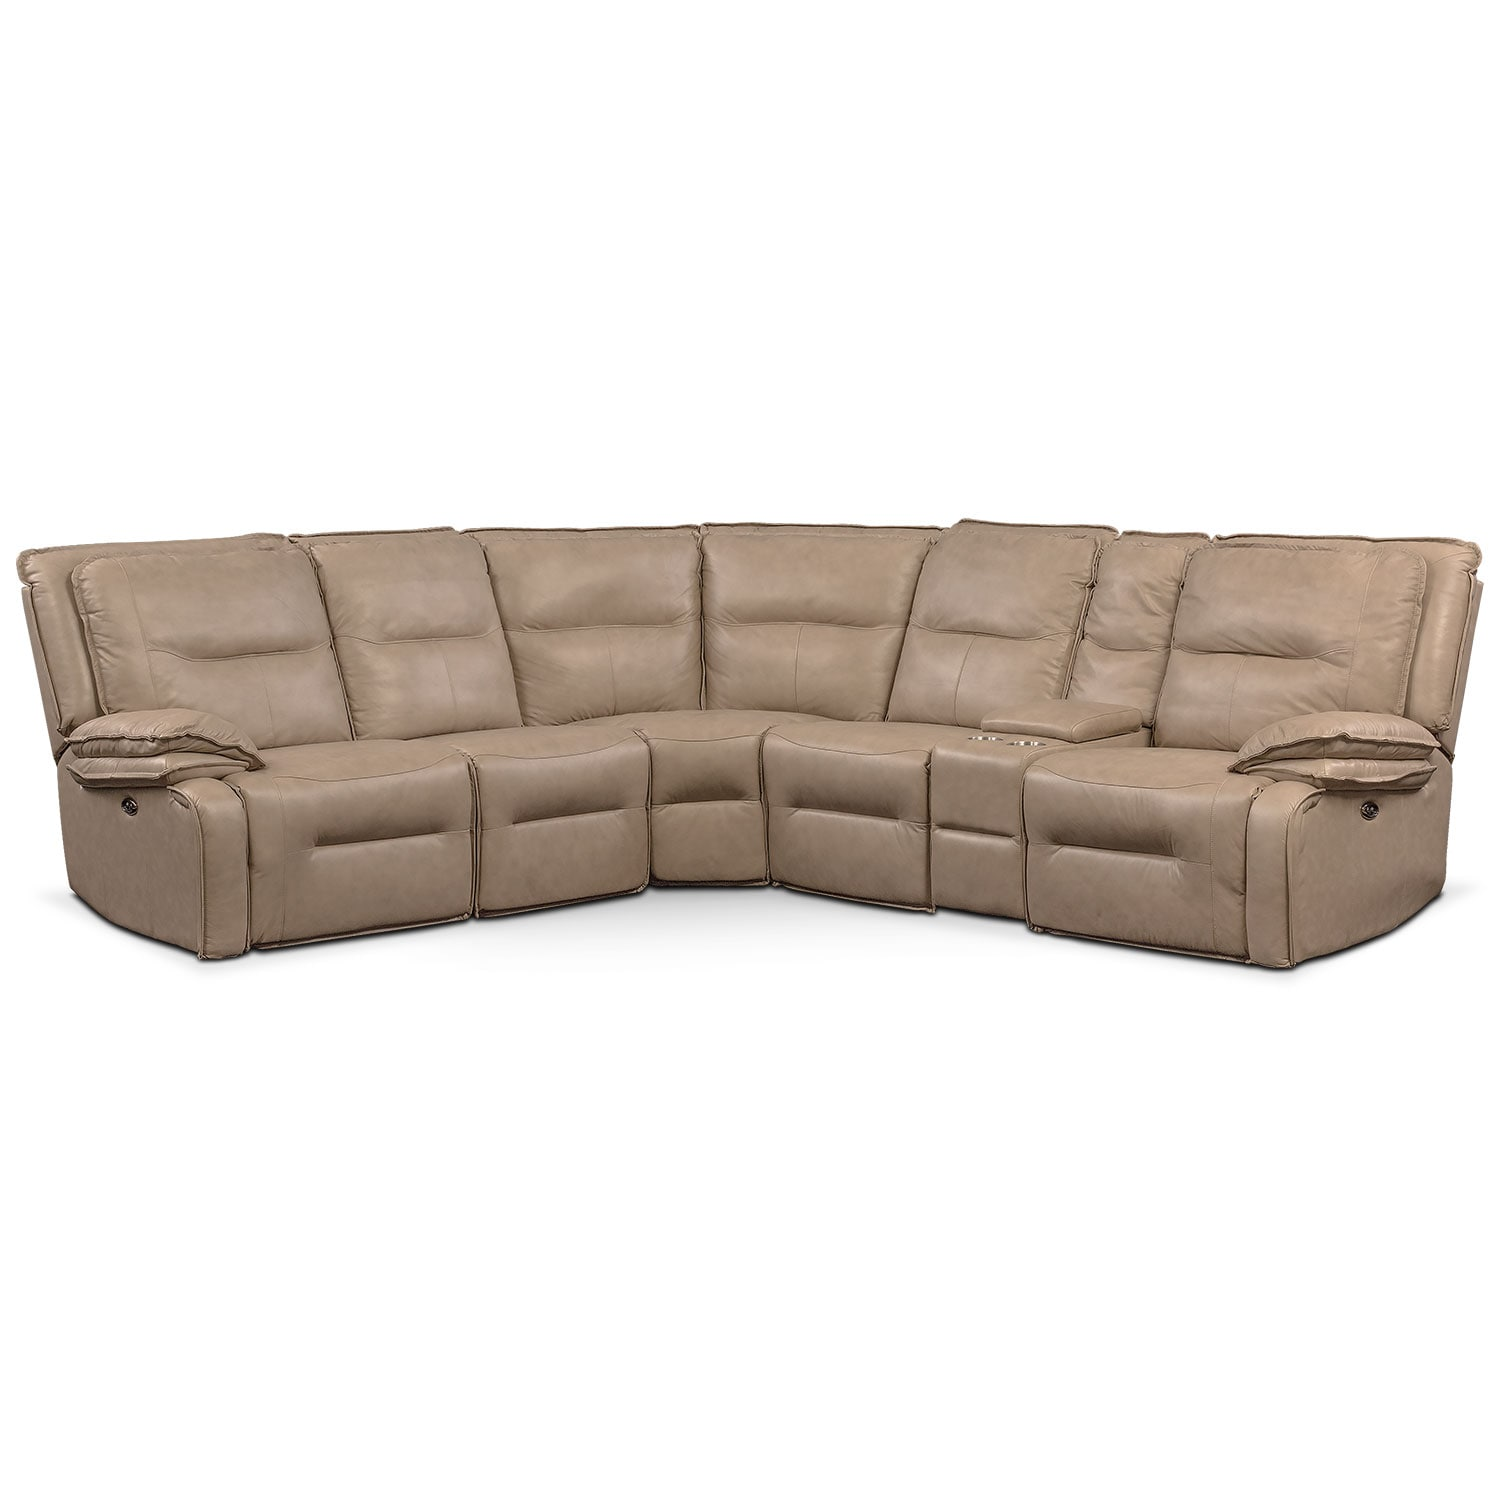 Nikki 6-Piece Power Reclining Sectional with 3 Recliners - Taupe